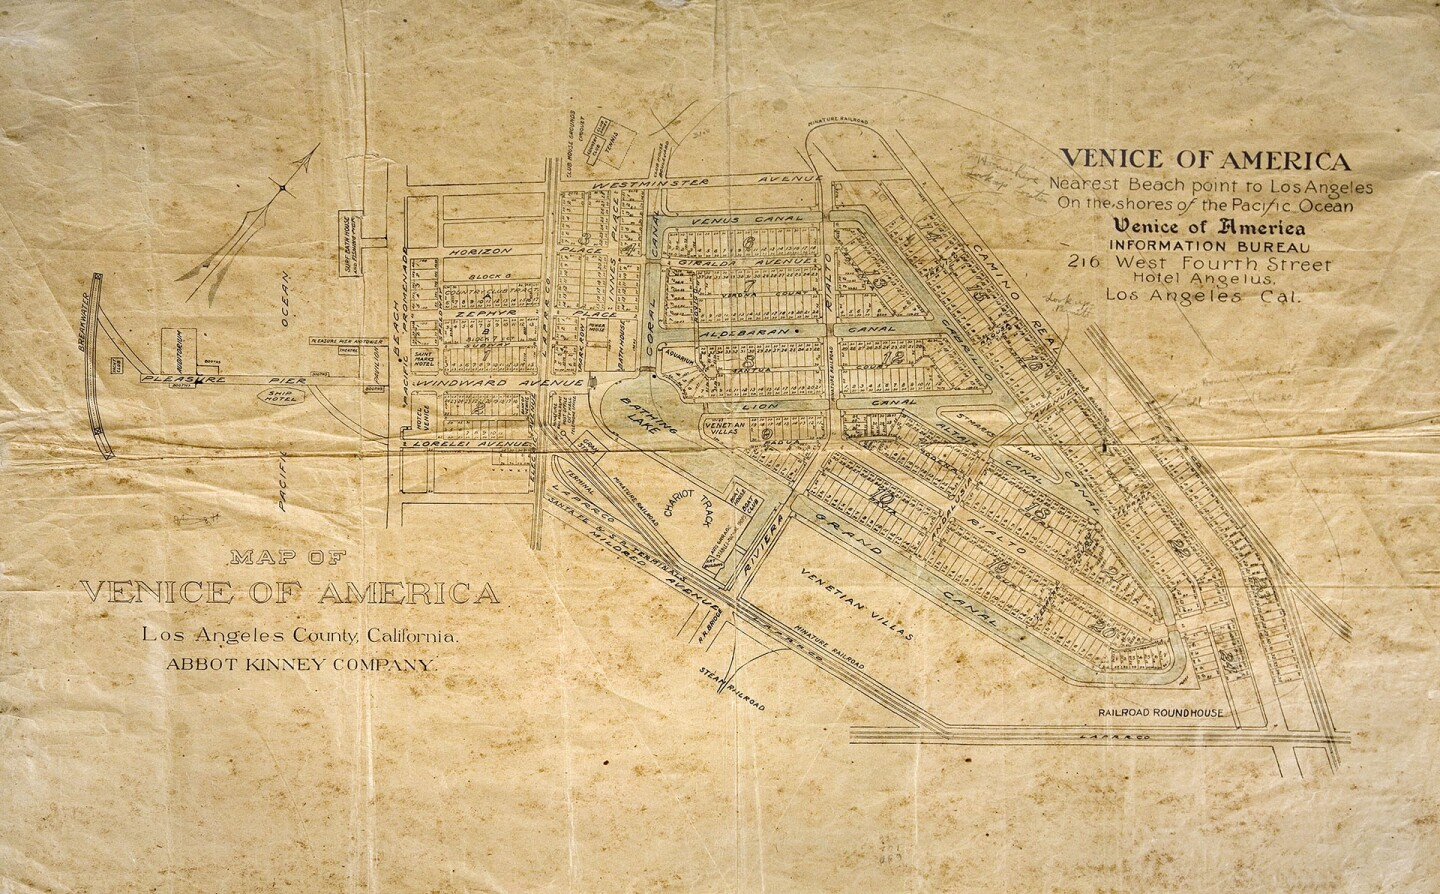 Abbot Kinney's original plan for Venice of America. All the canals pictured here are now paved roads. Courtesy of the Los Angeles Public Library Map Collection.